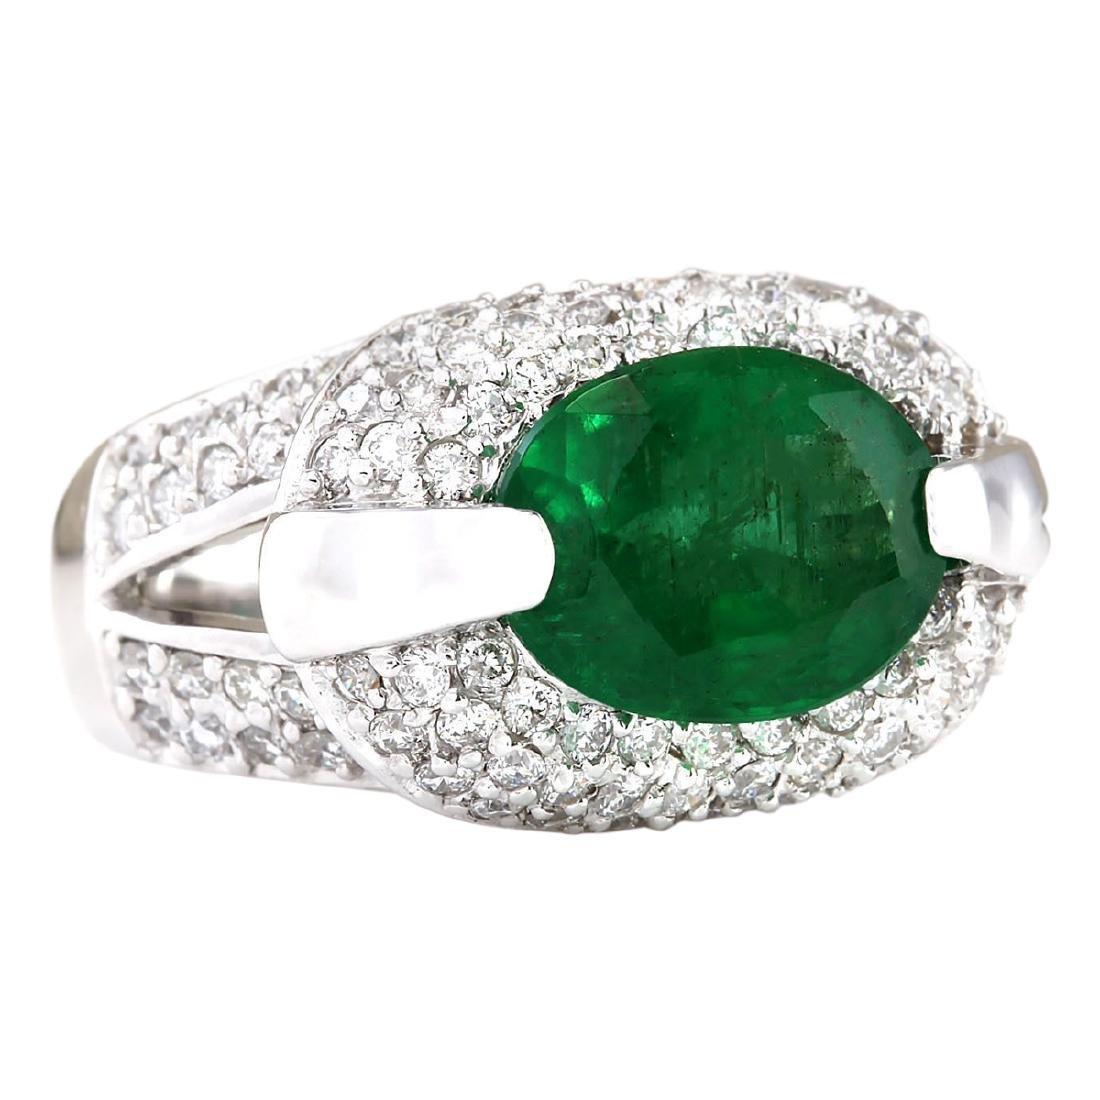 5.08 CTW Natural Emerald And Diamond Ring In 18K White - 2